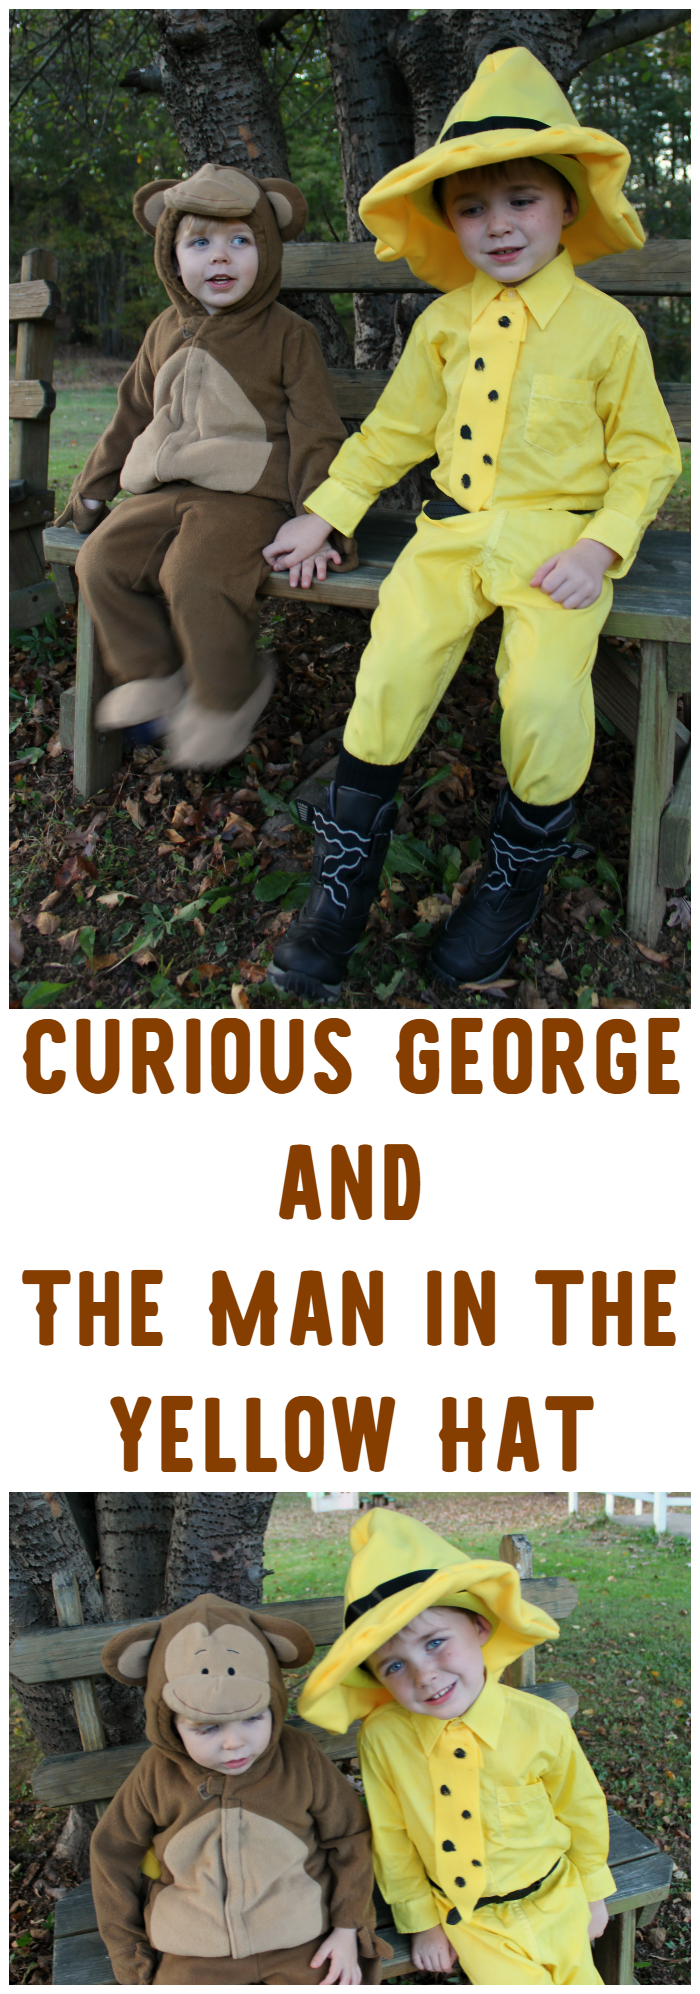 If your kiddos love Curious George as much as mine do, they'll totally love this Halloween costume idea!